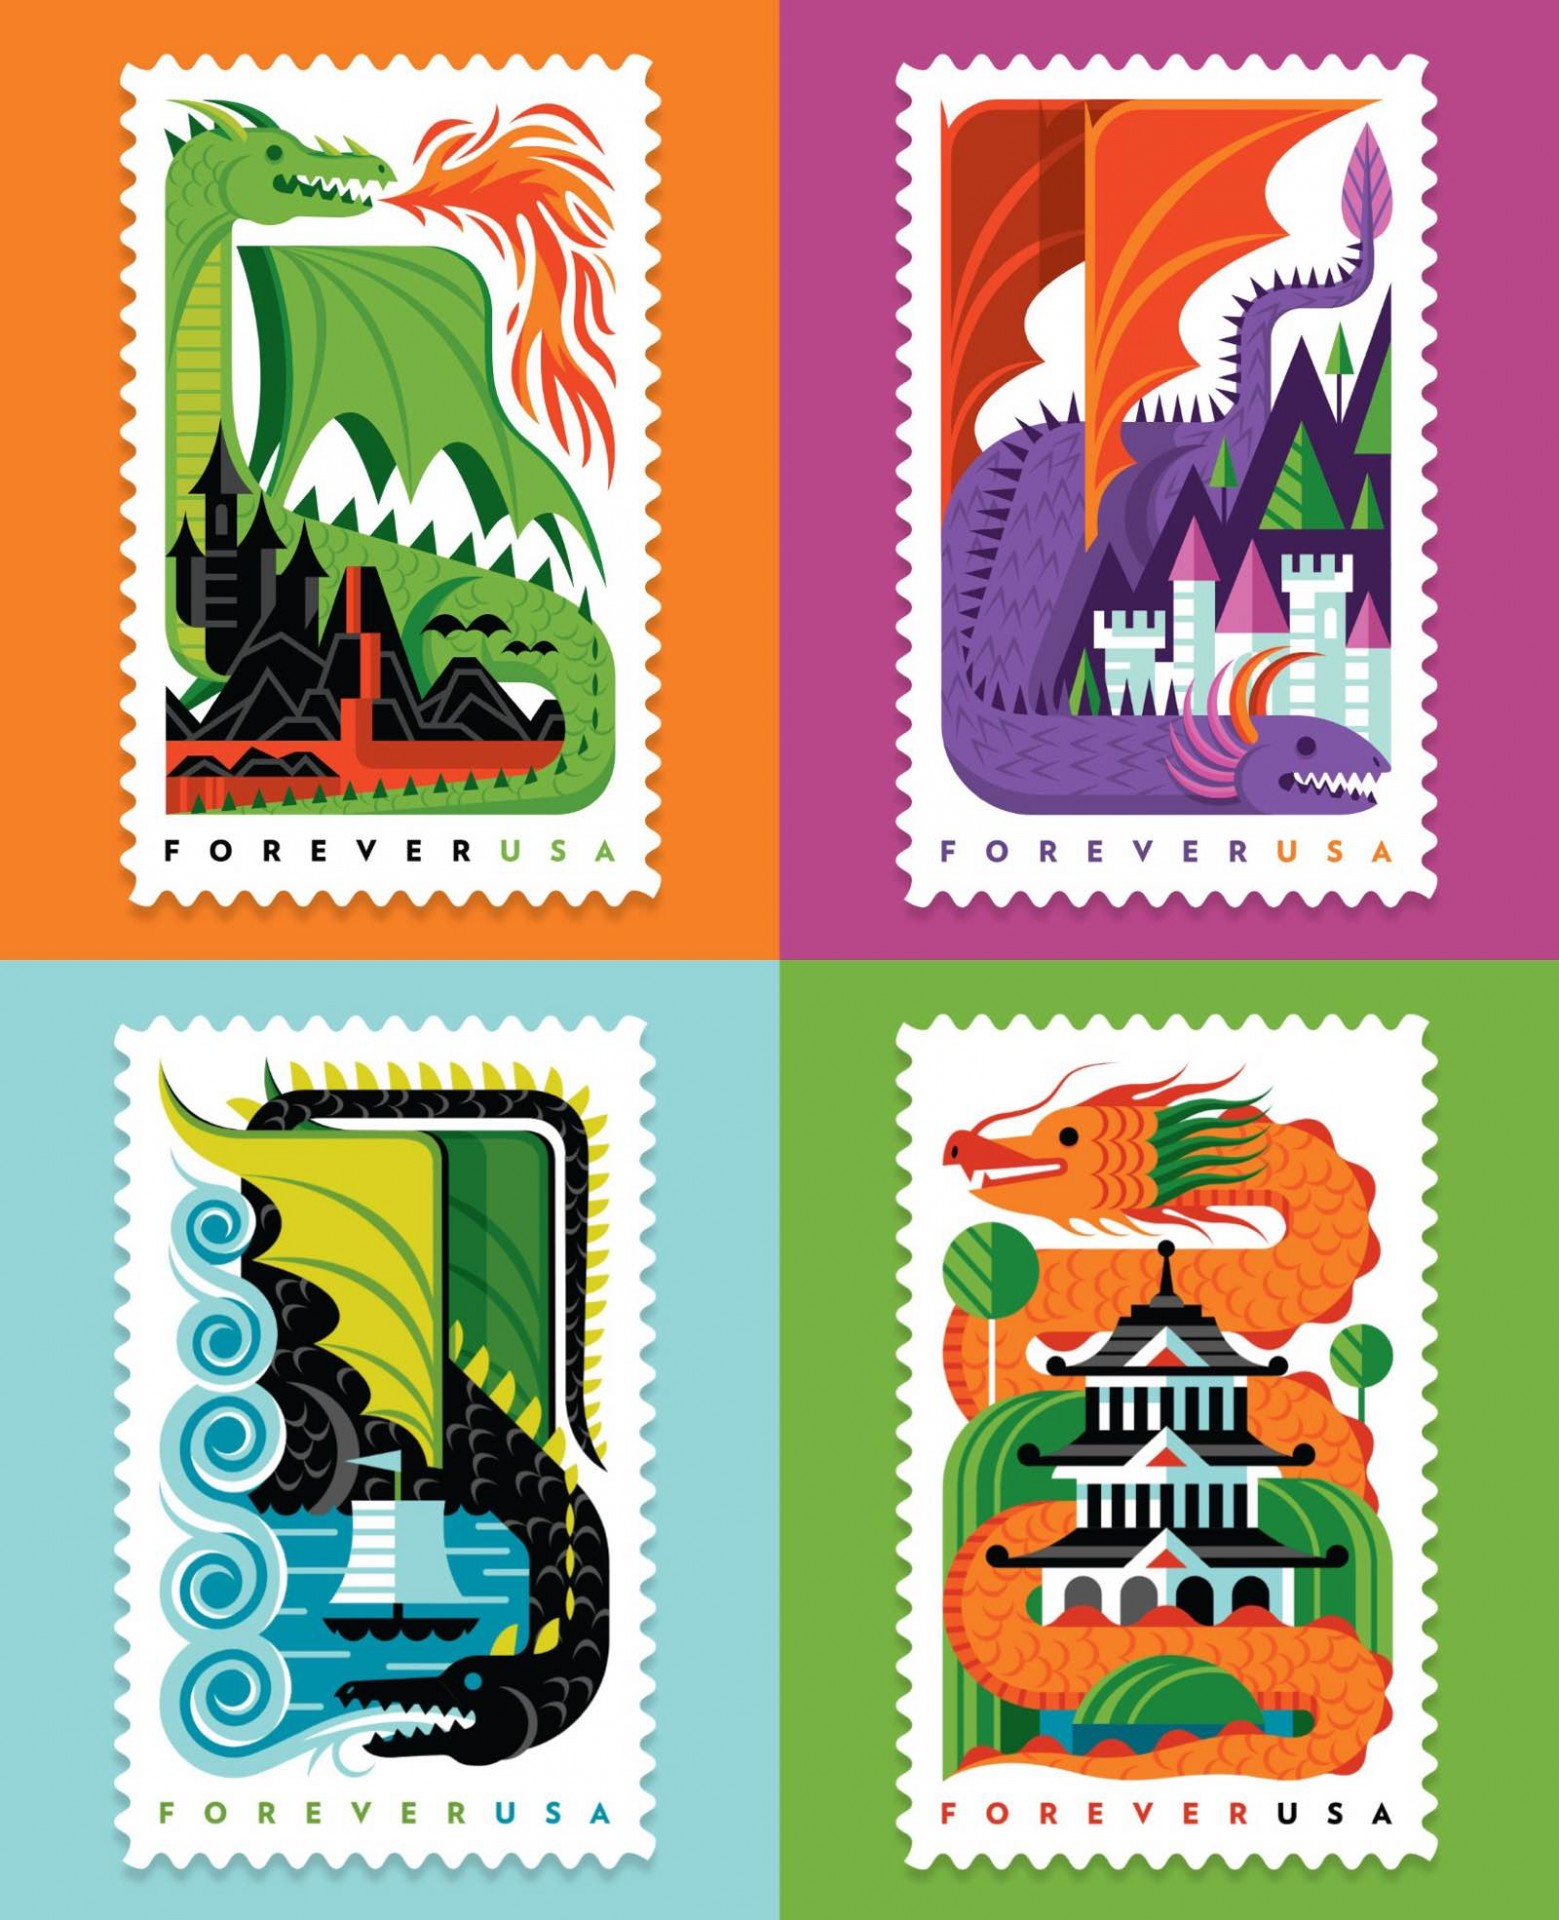 invisible-creature-usps-dragons-forever-usa-postage-stamps-2